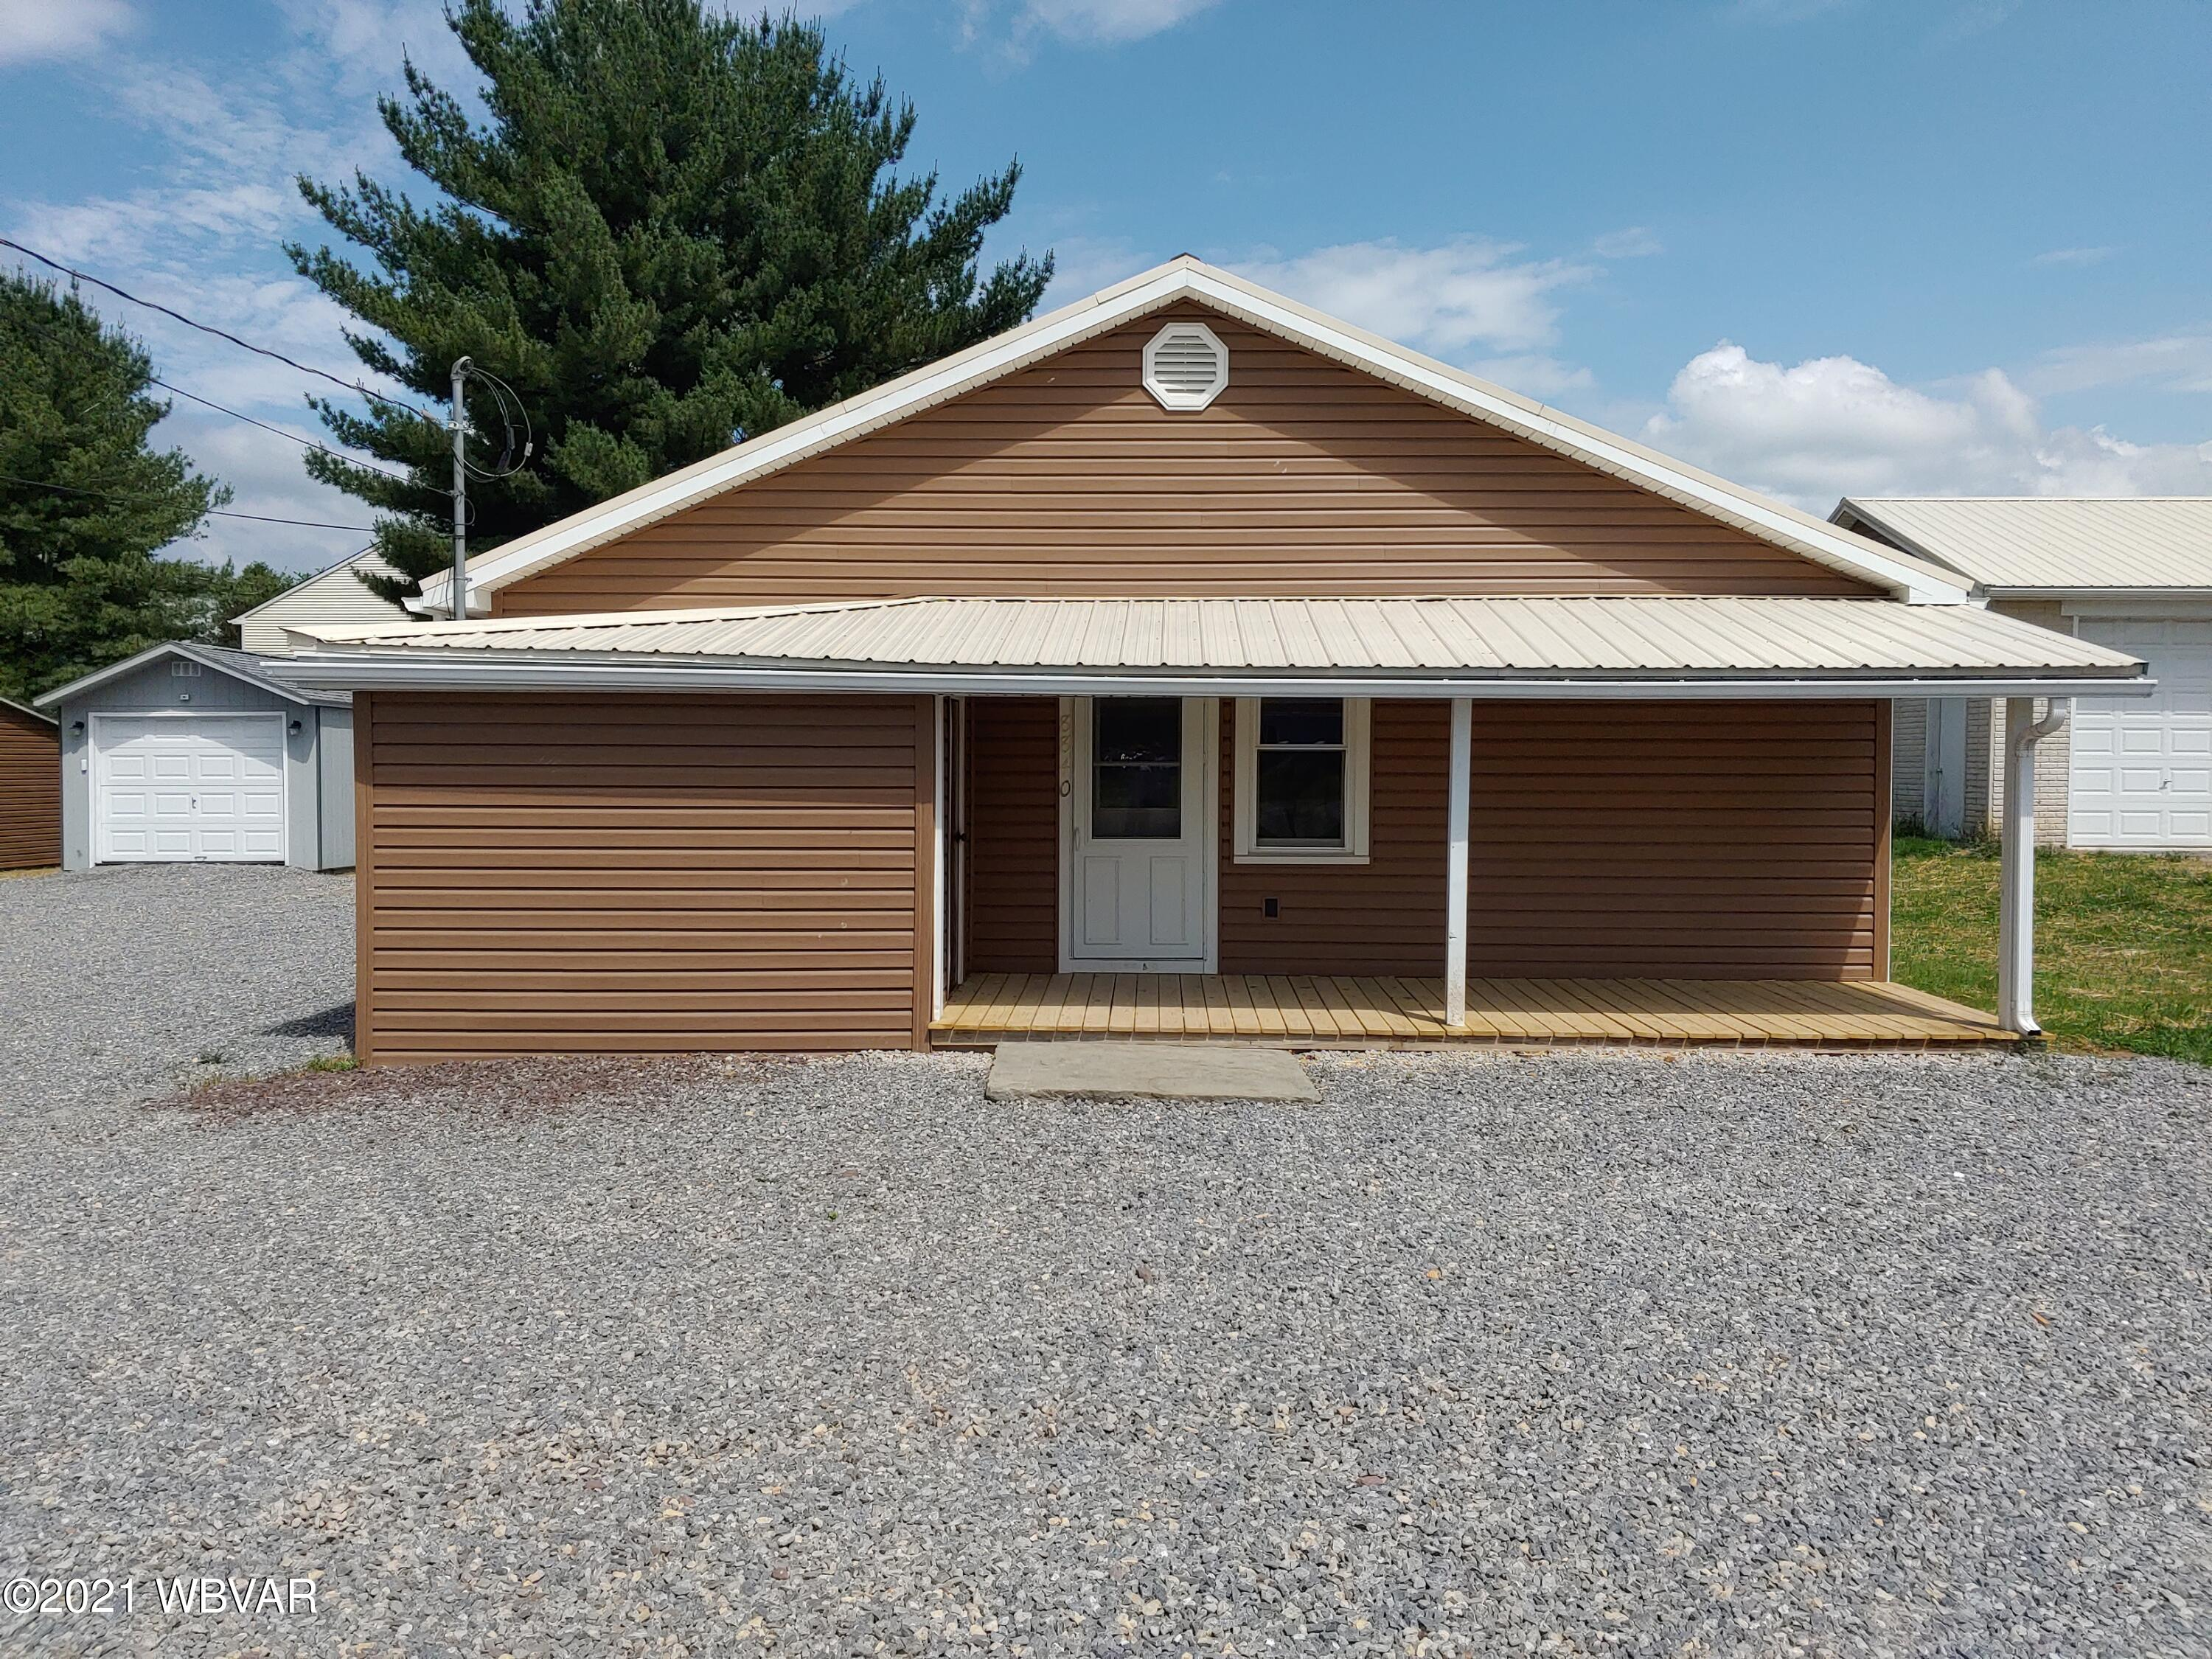 8840 PA-405 HIGHWAY, Montgomery, PA 17752, 2 Bedrooms Bedrooms, ,1 BathroomBathrooms,Resid-lease/rental,For sale,PA-405,WB-92740